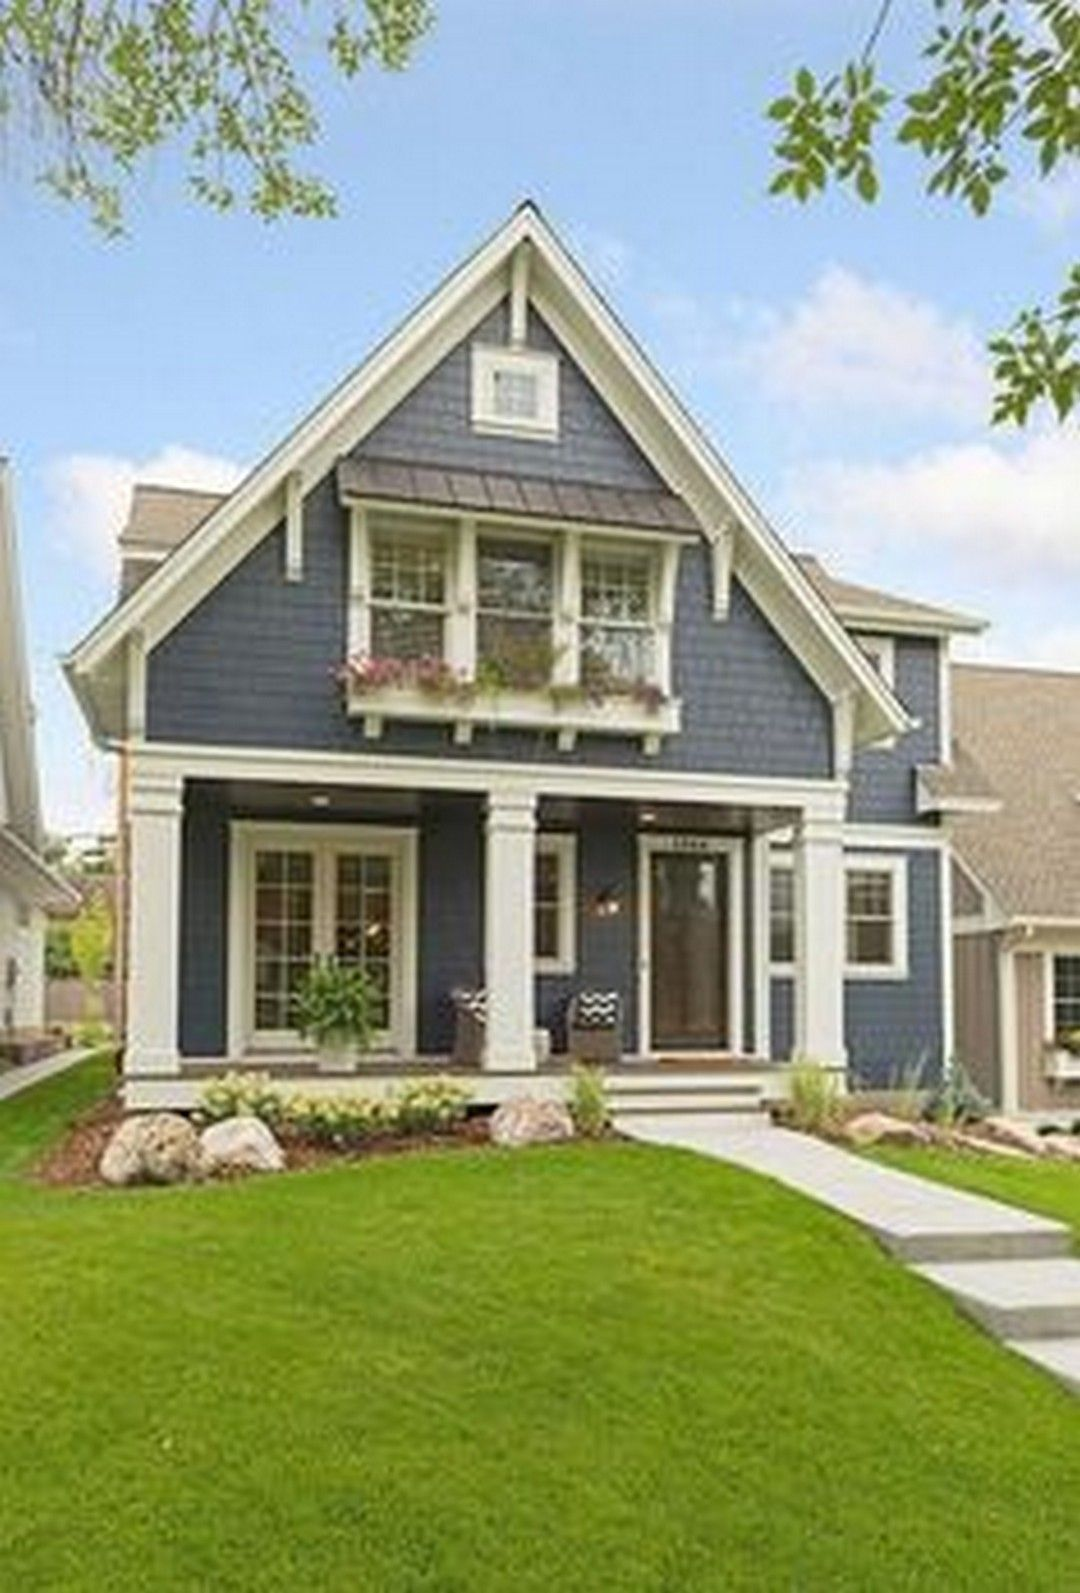 Beautiful Exterior Home Design Trends: Beautiful Farmhouse Exterior Designs To Match In Any House